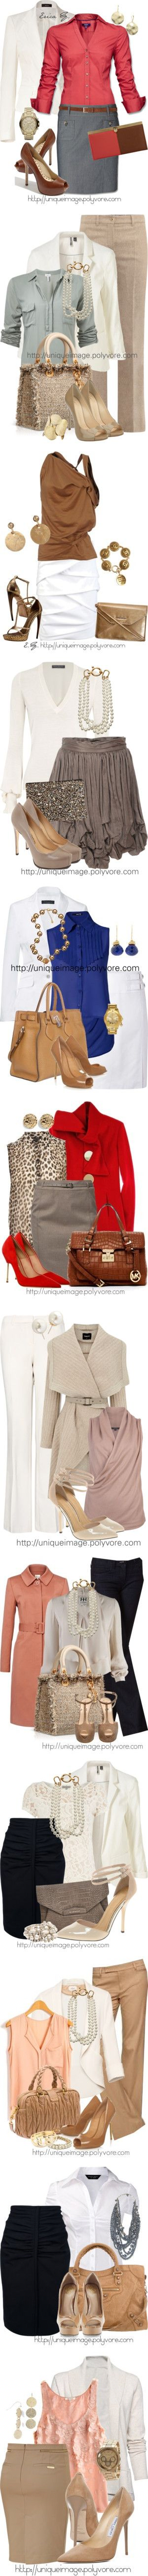 """Simply Classy"" by uniqueimage on Polyvore"